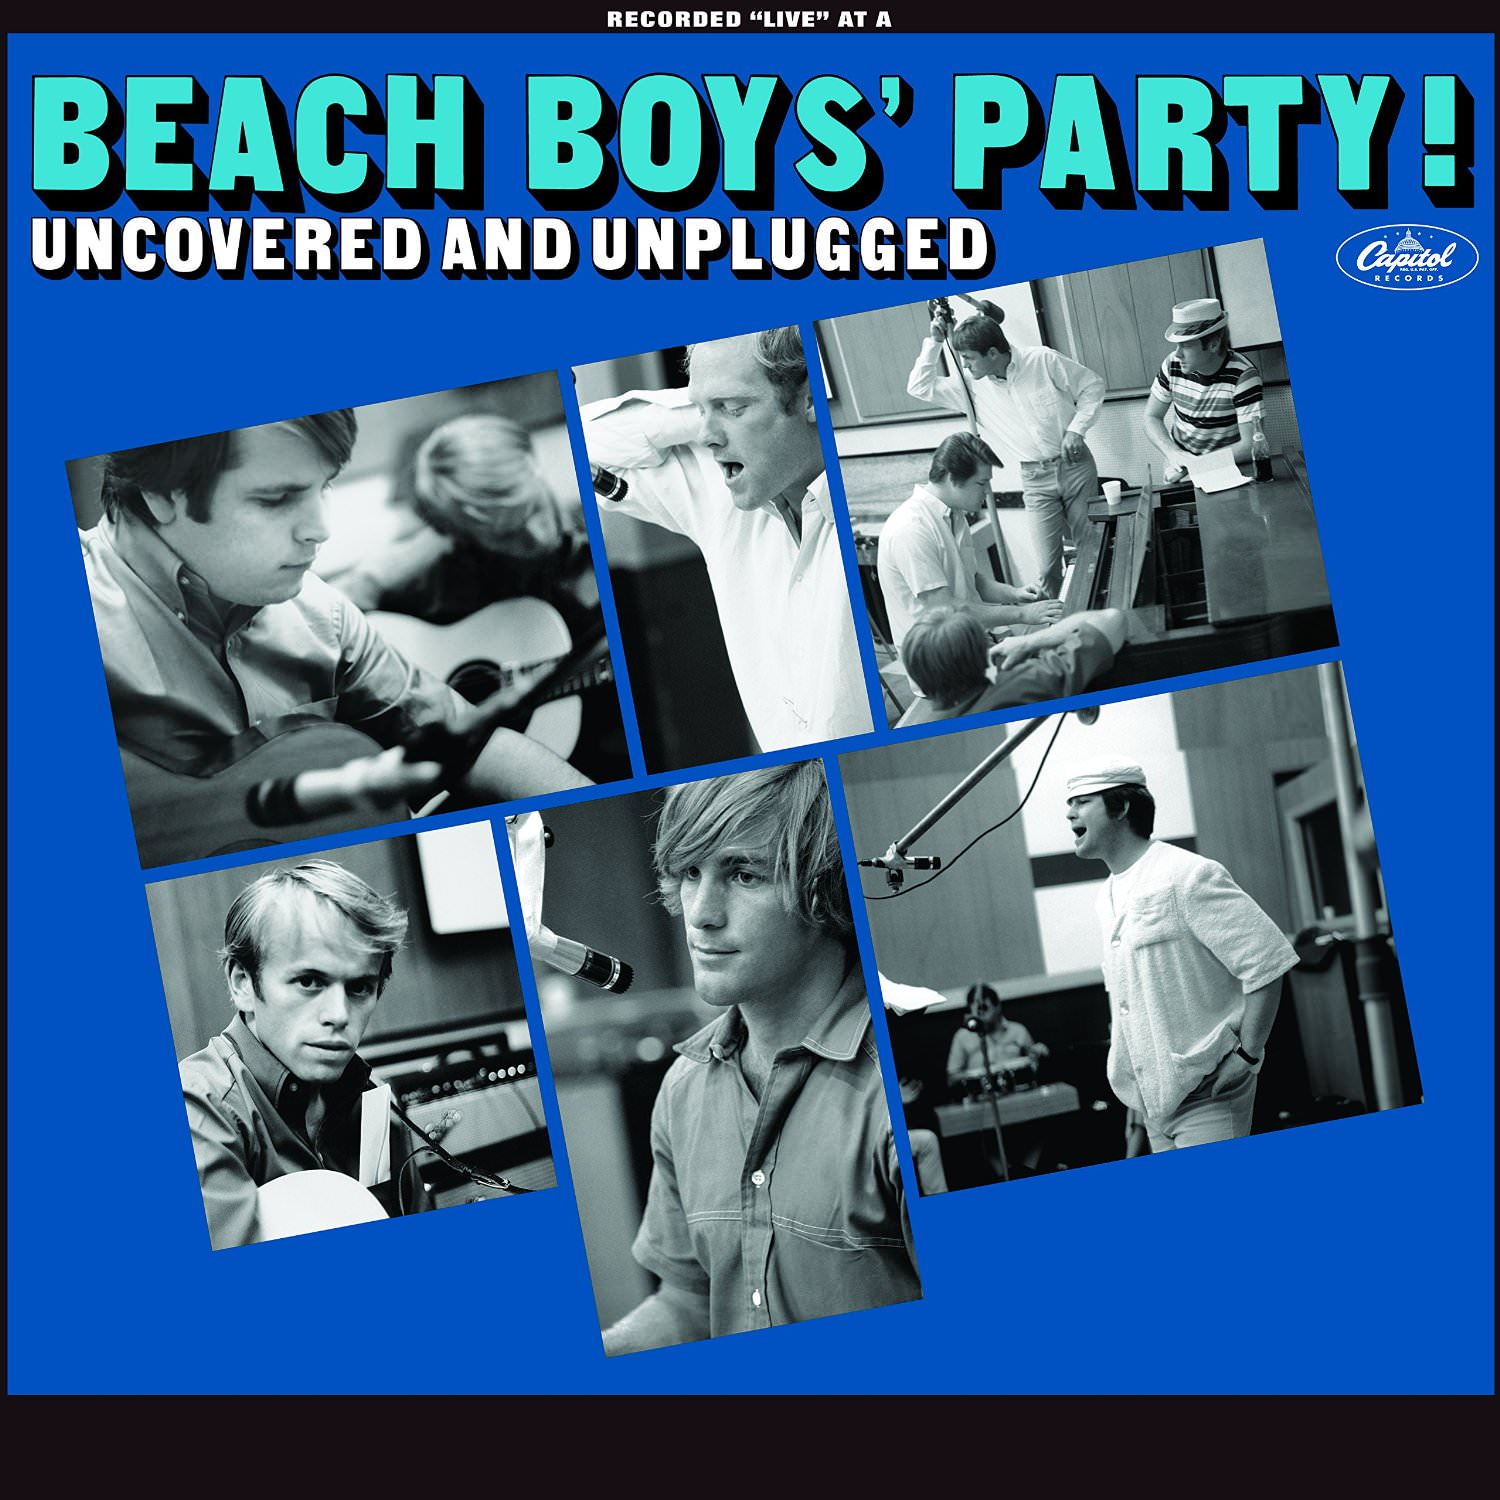 Beach Boys' Party! Uncovered And Unplugged [2 CD] cover